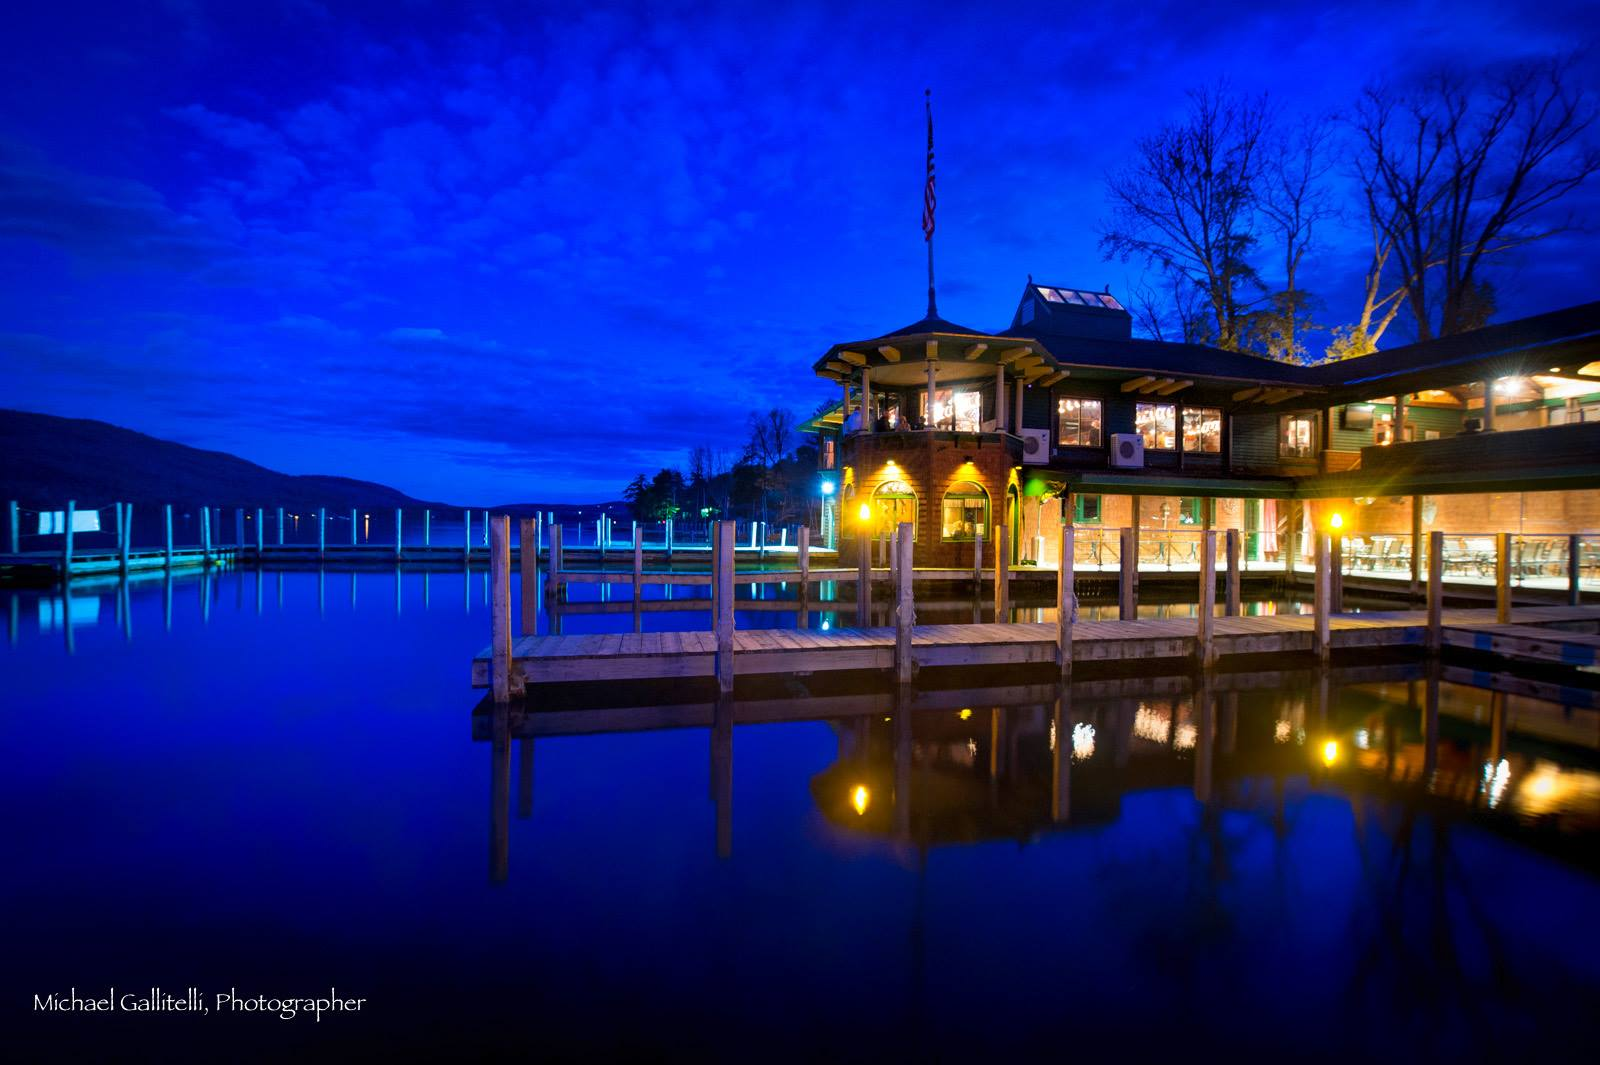 Dinner Magic at the Boathouse Restaurant